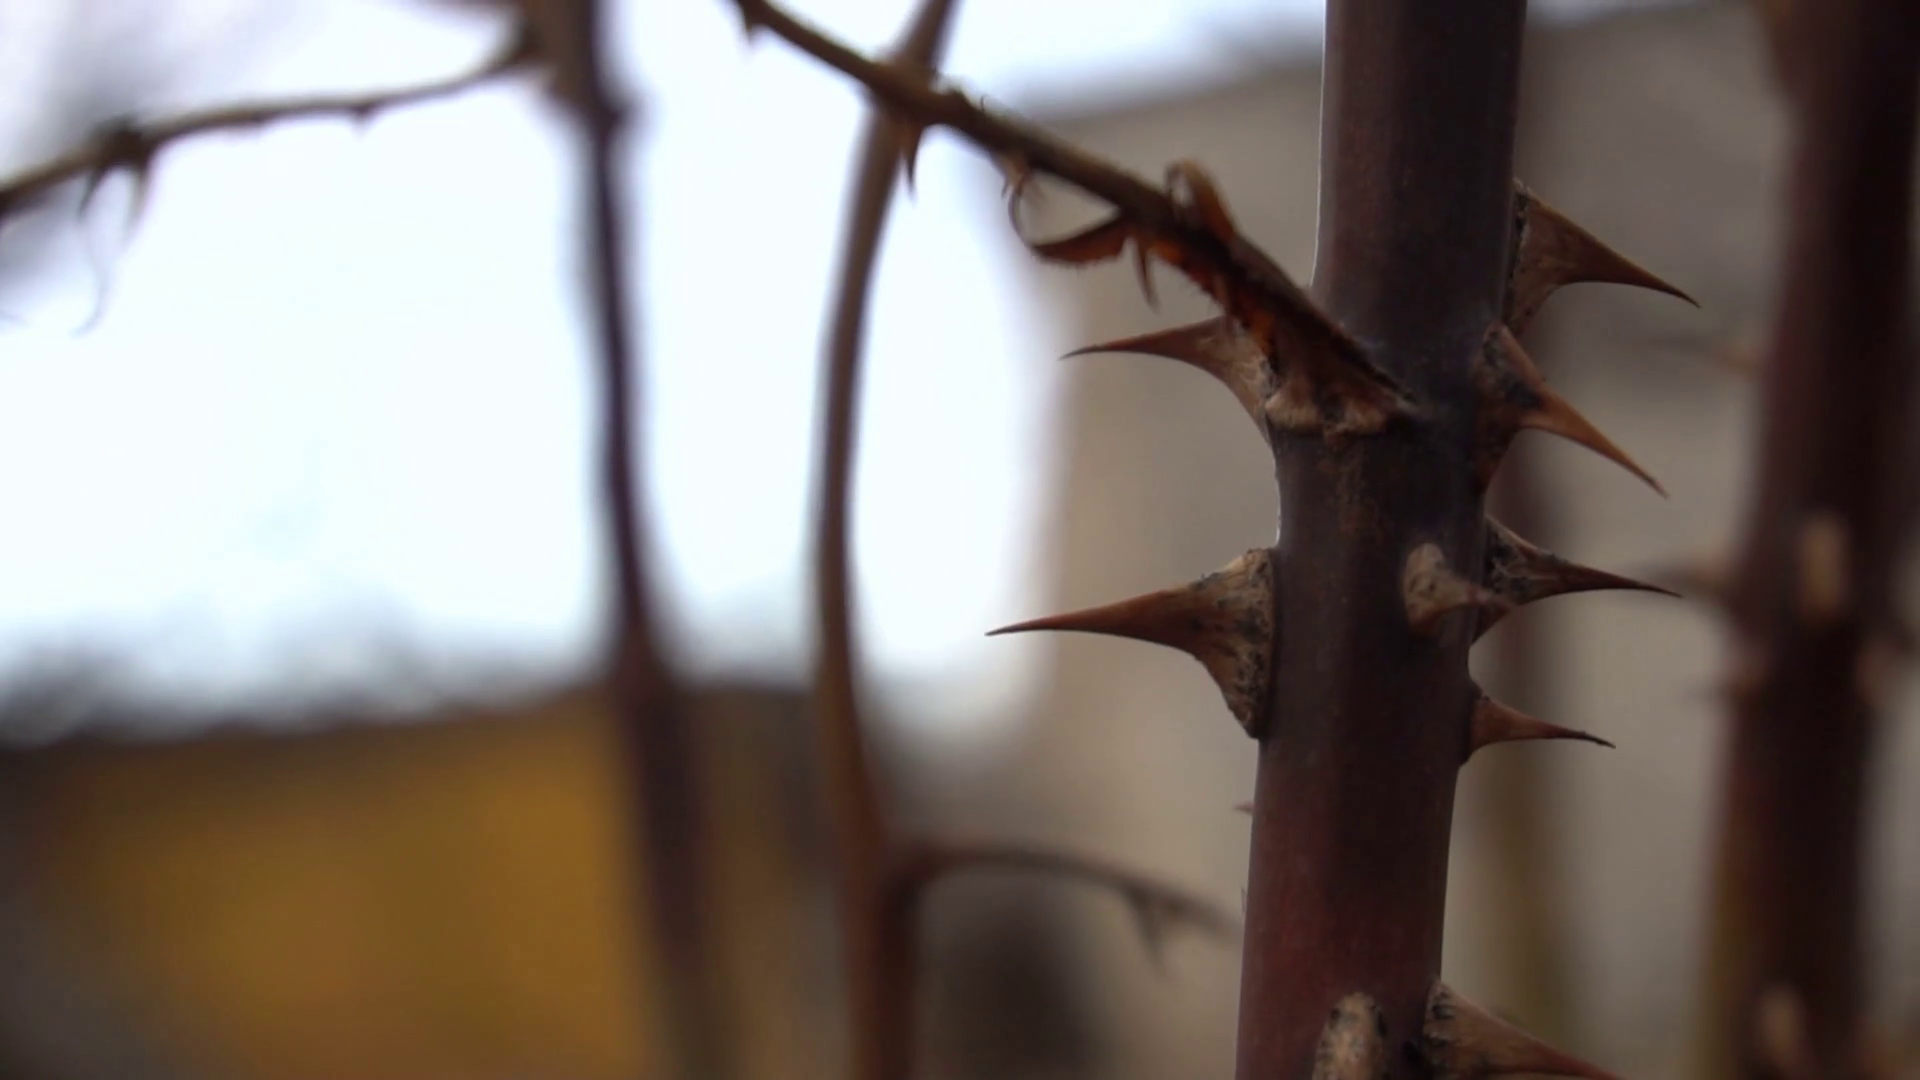 Dry rose bush. Thorns close-up Stock Video Footage - Videoblocks